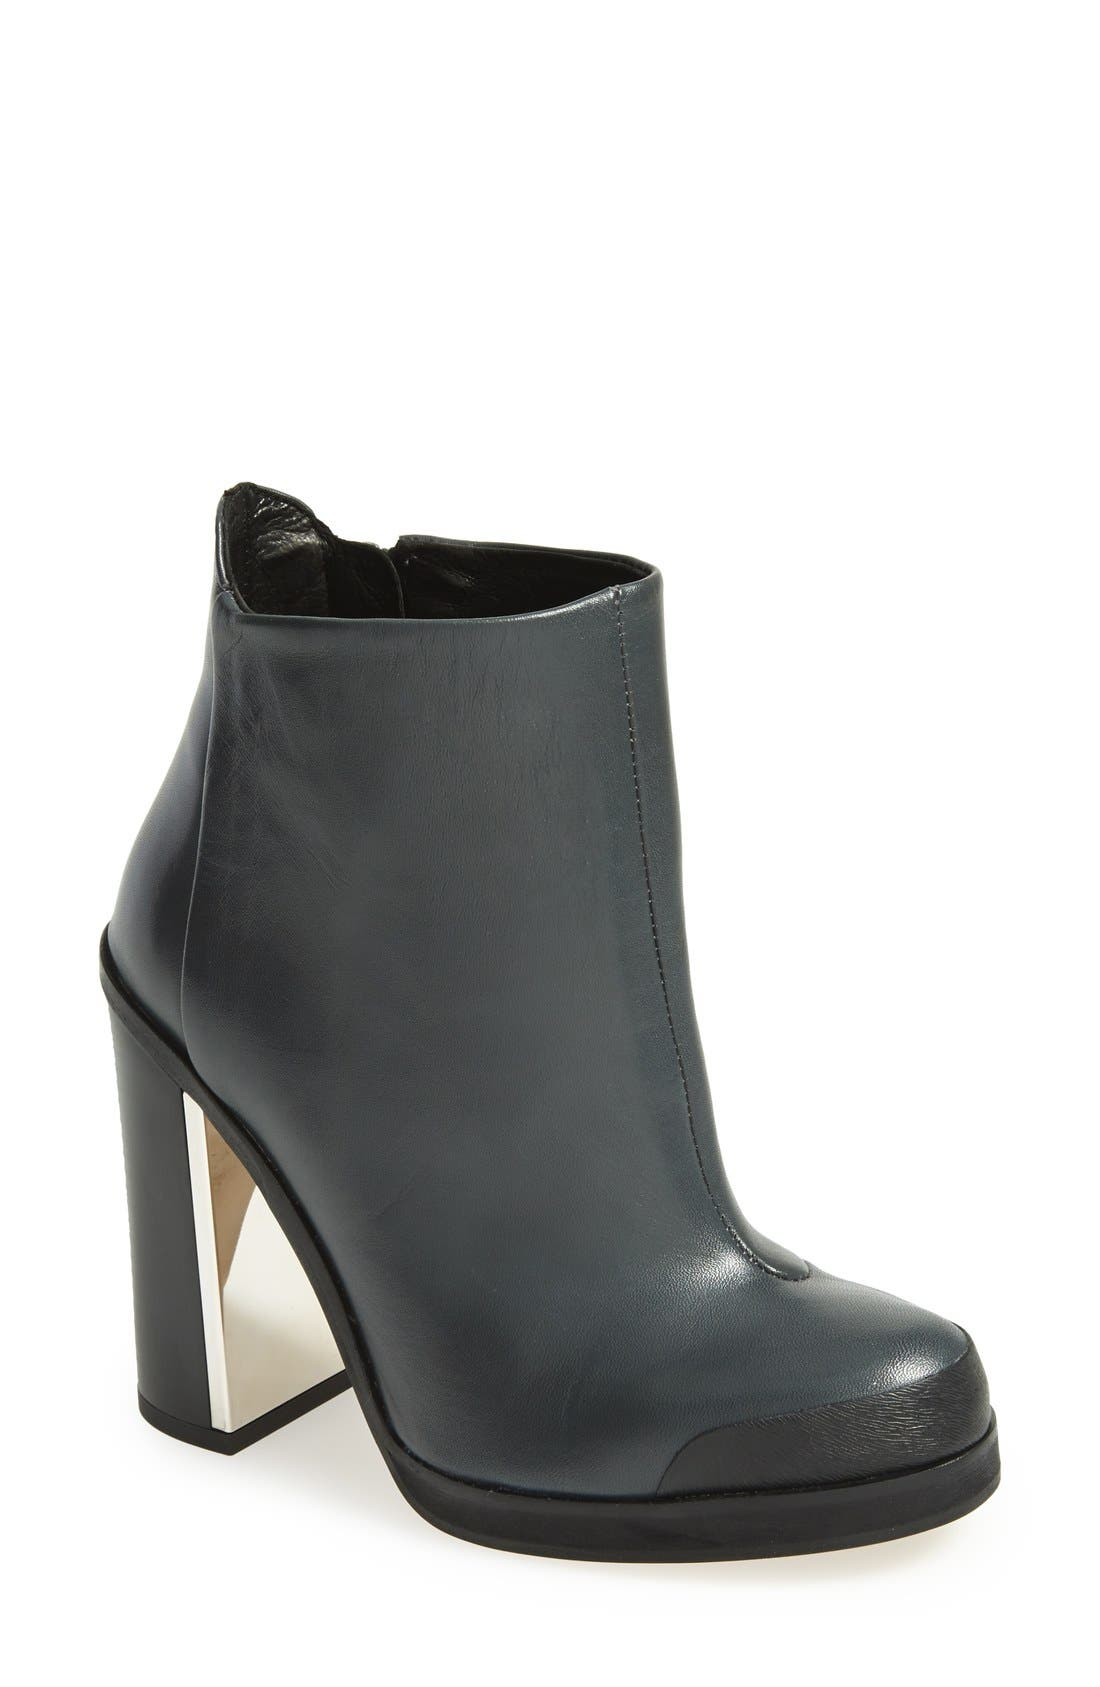 Alternate Image 1 Selected - Topshop 'Haunt' Metal Plate Ankle Bootie (Women)